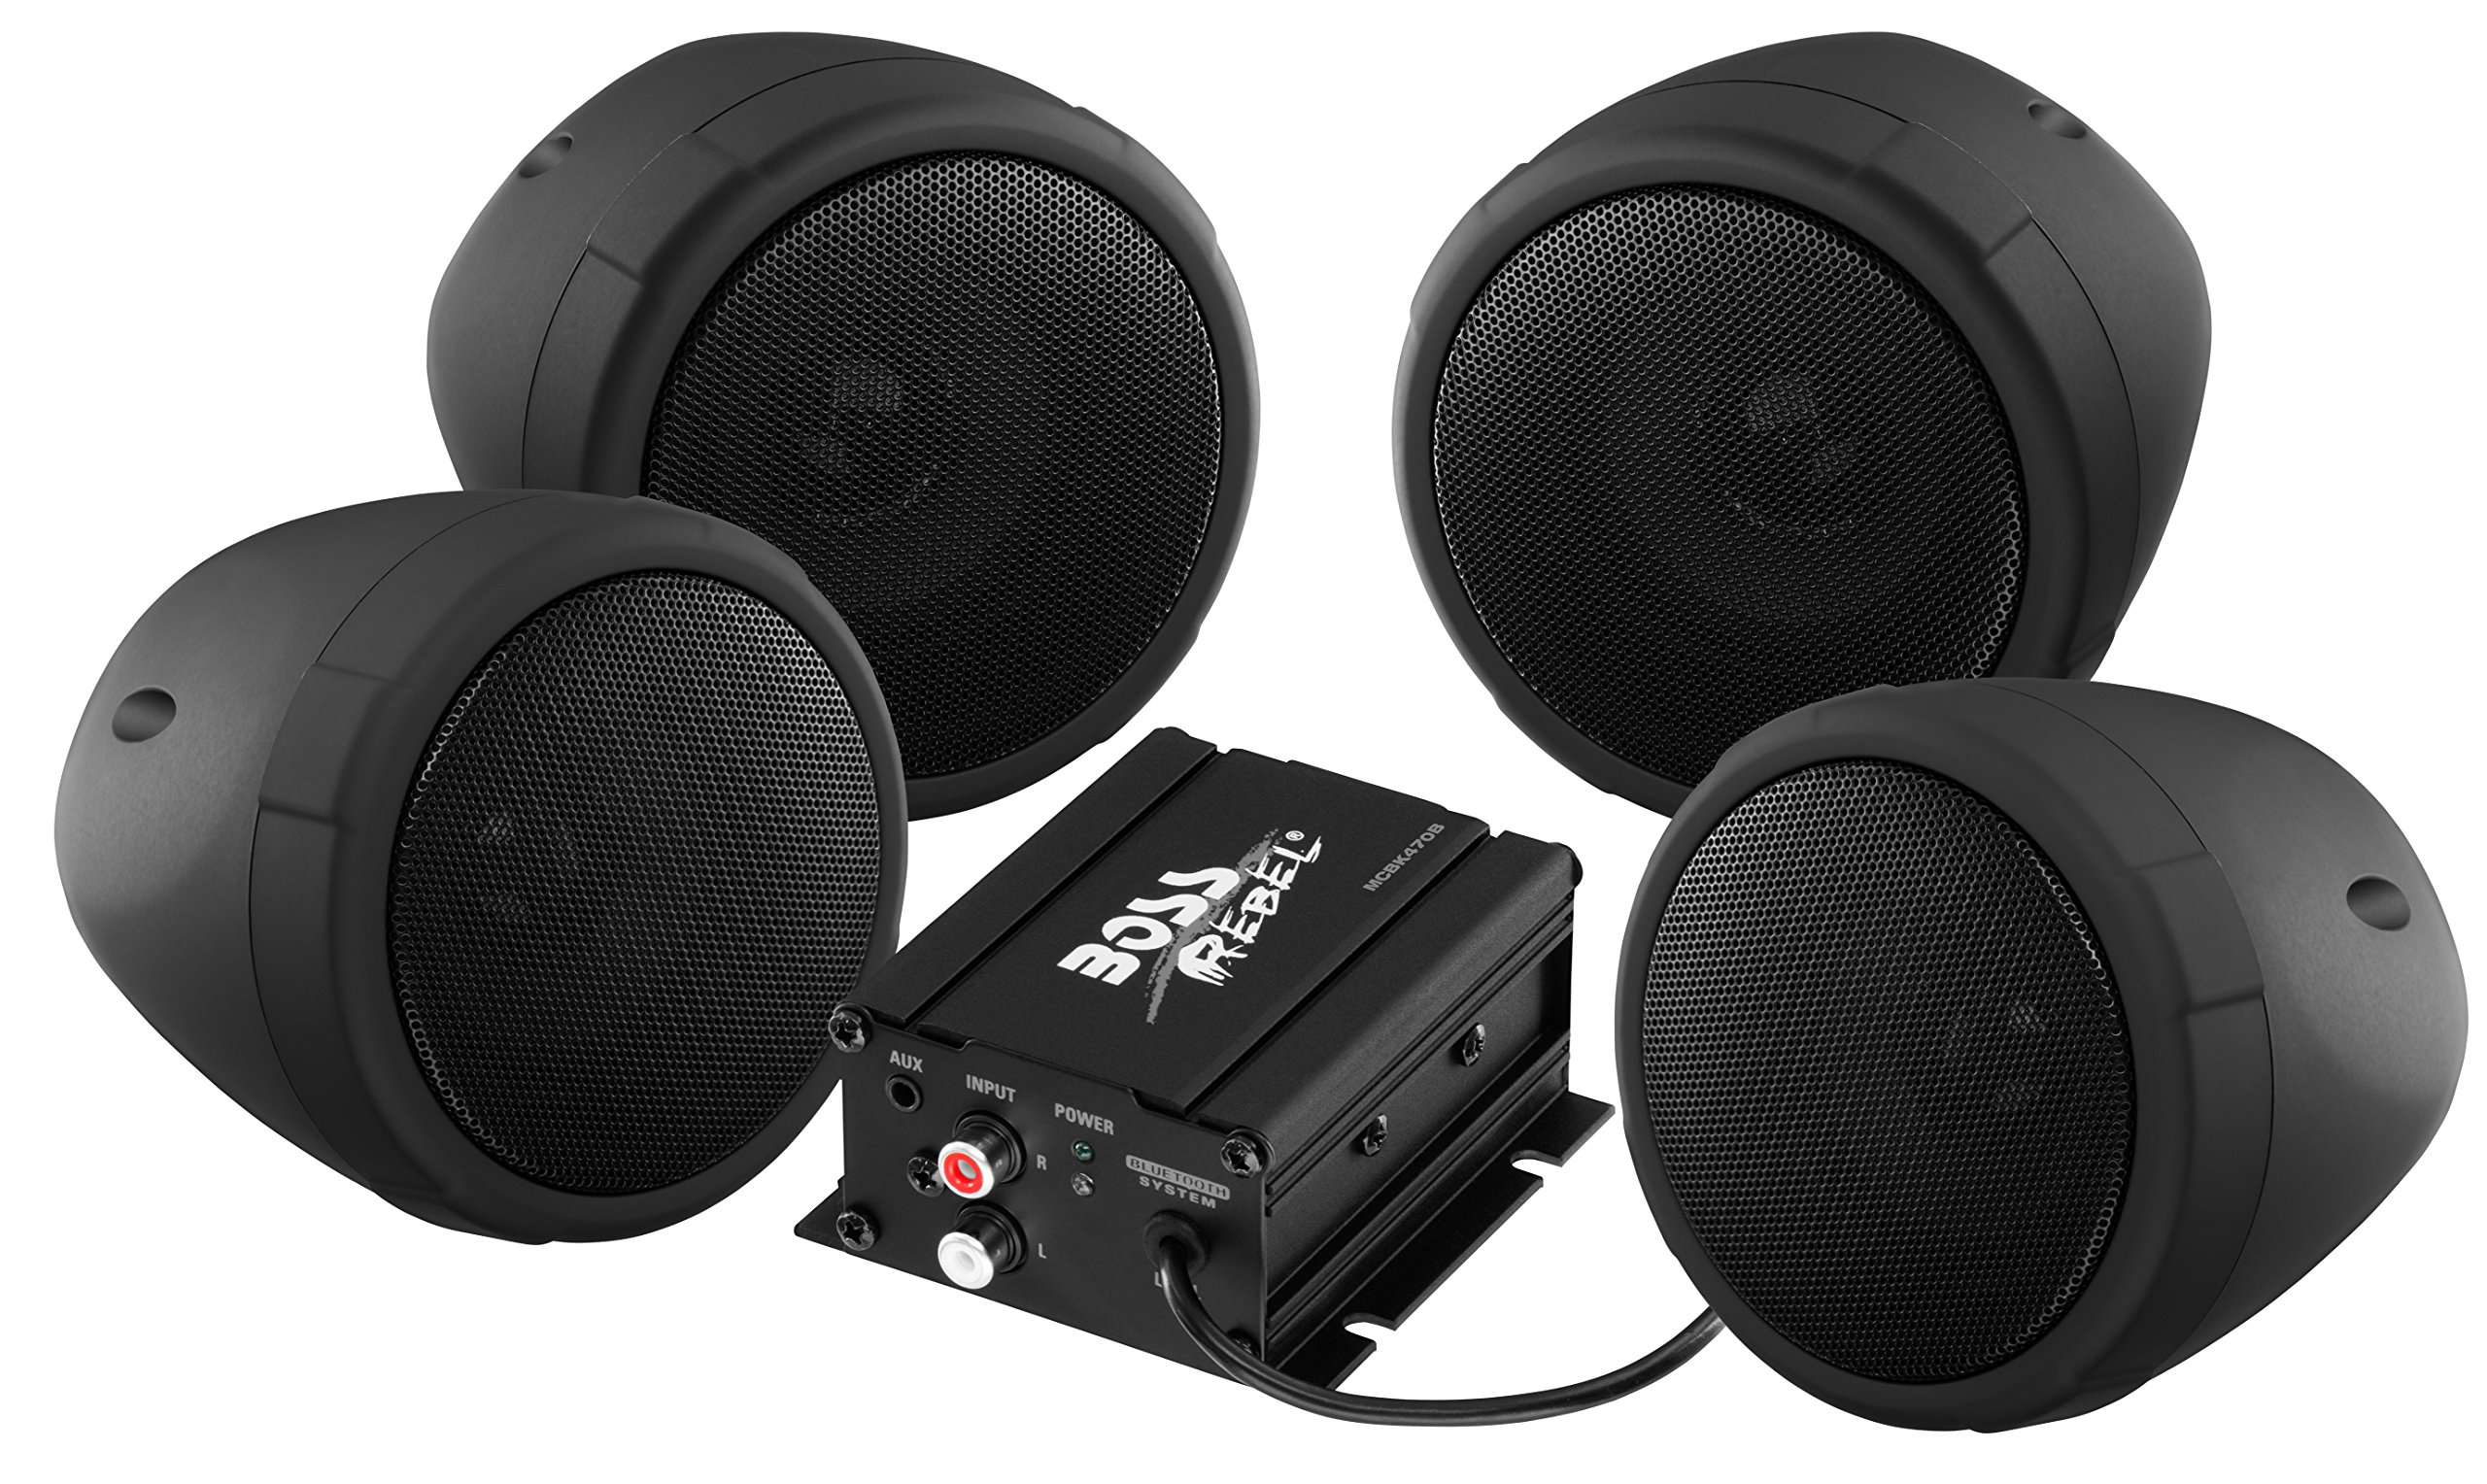 BOSS Audio MCBK470B Weatherproof Speaker/Amplifier Sound System, Bluetooth Amplifier, Four Speakers, Inline Volume Control, Ideal For Motorcycles/ATV and 12 Volt Applications